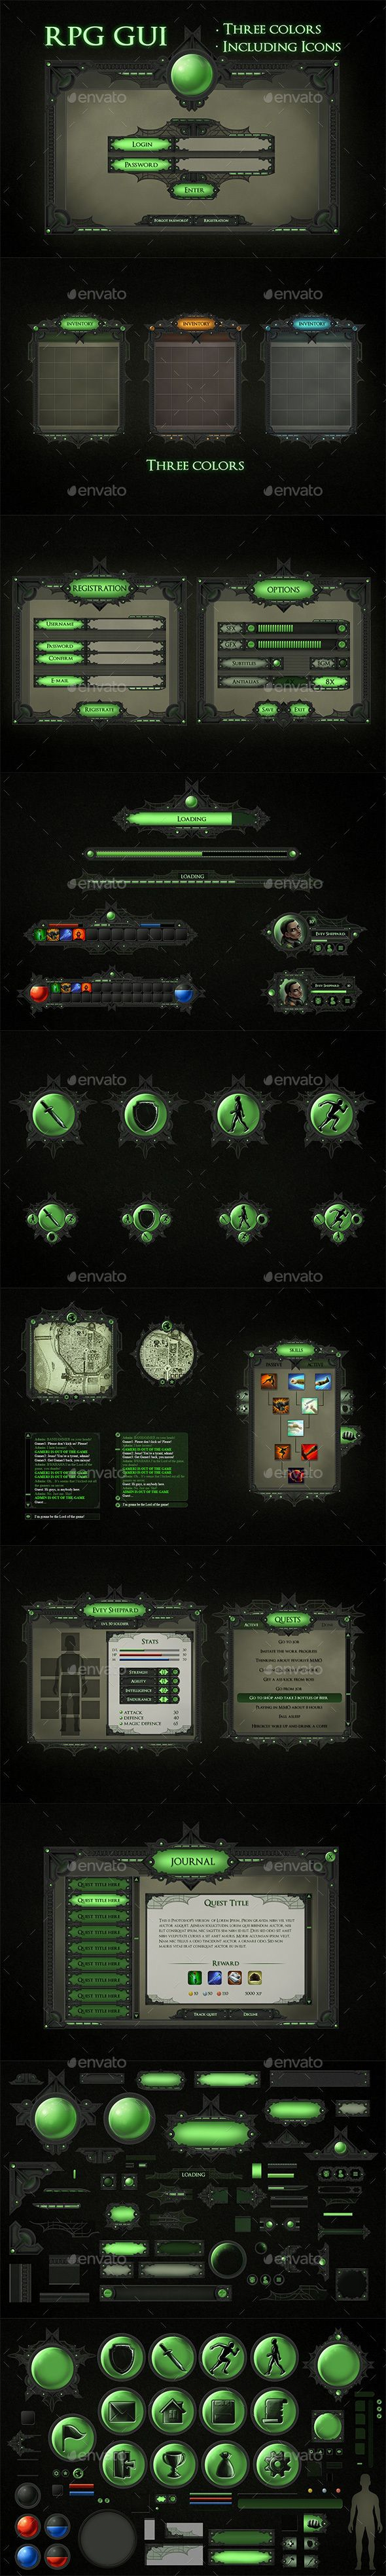 Pin by Cool Design on Game Assets Game interface